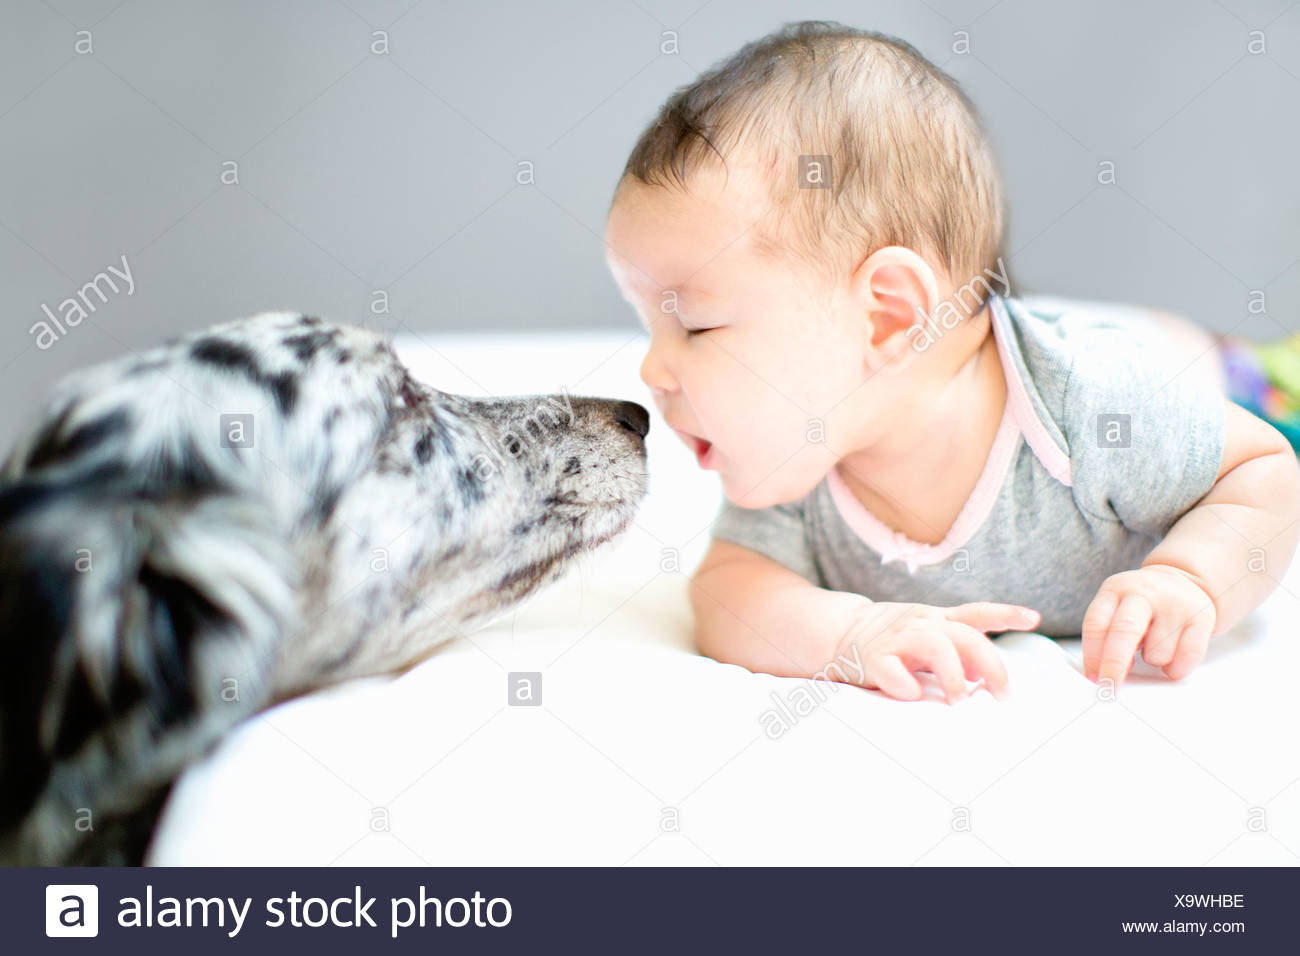 Baby girl face to face with pet dog - Stock Image